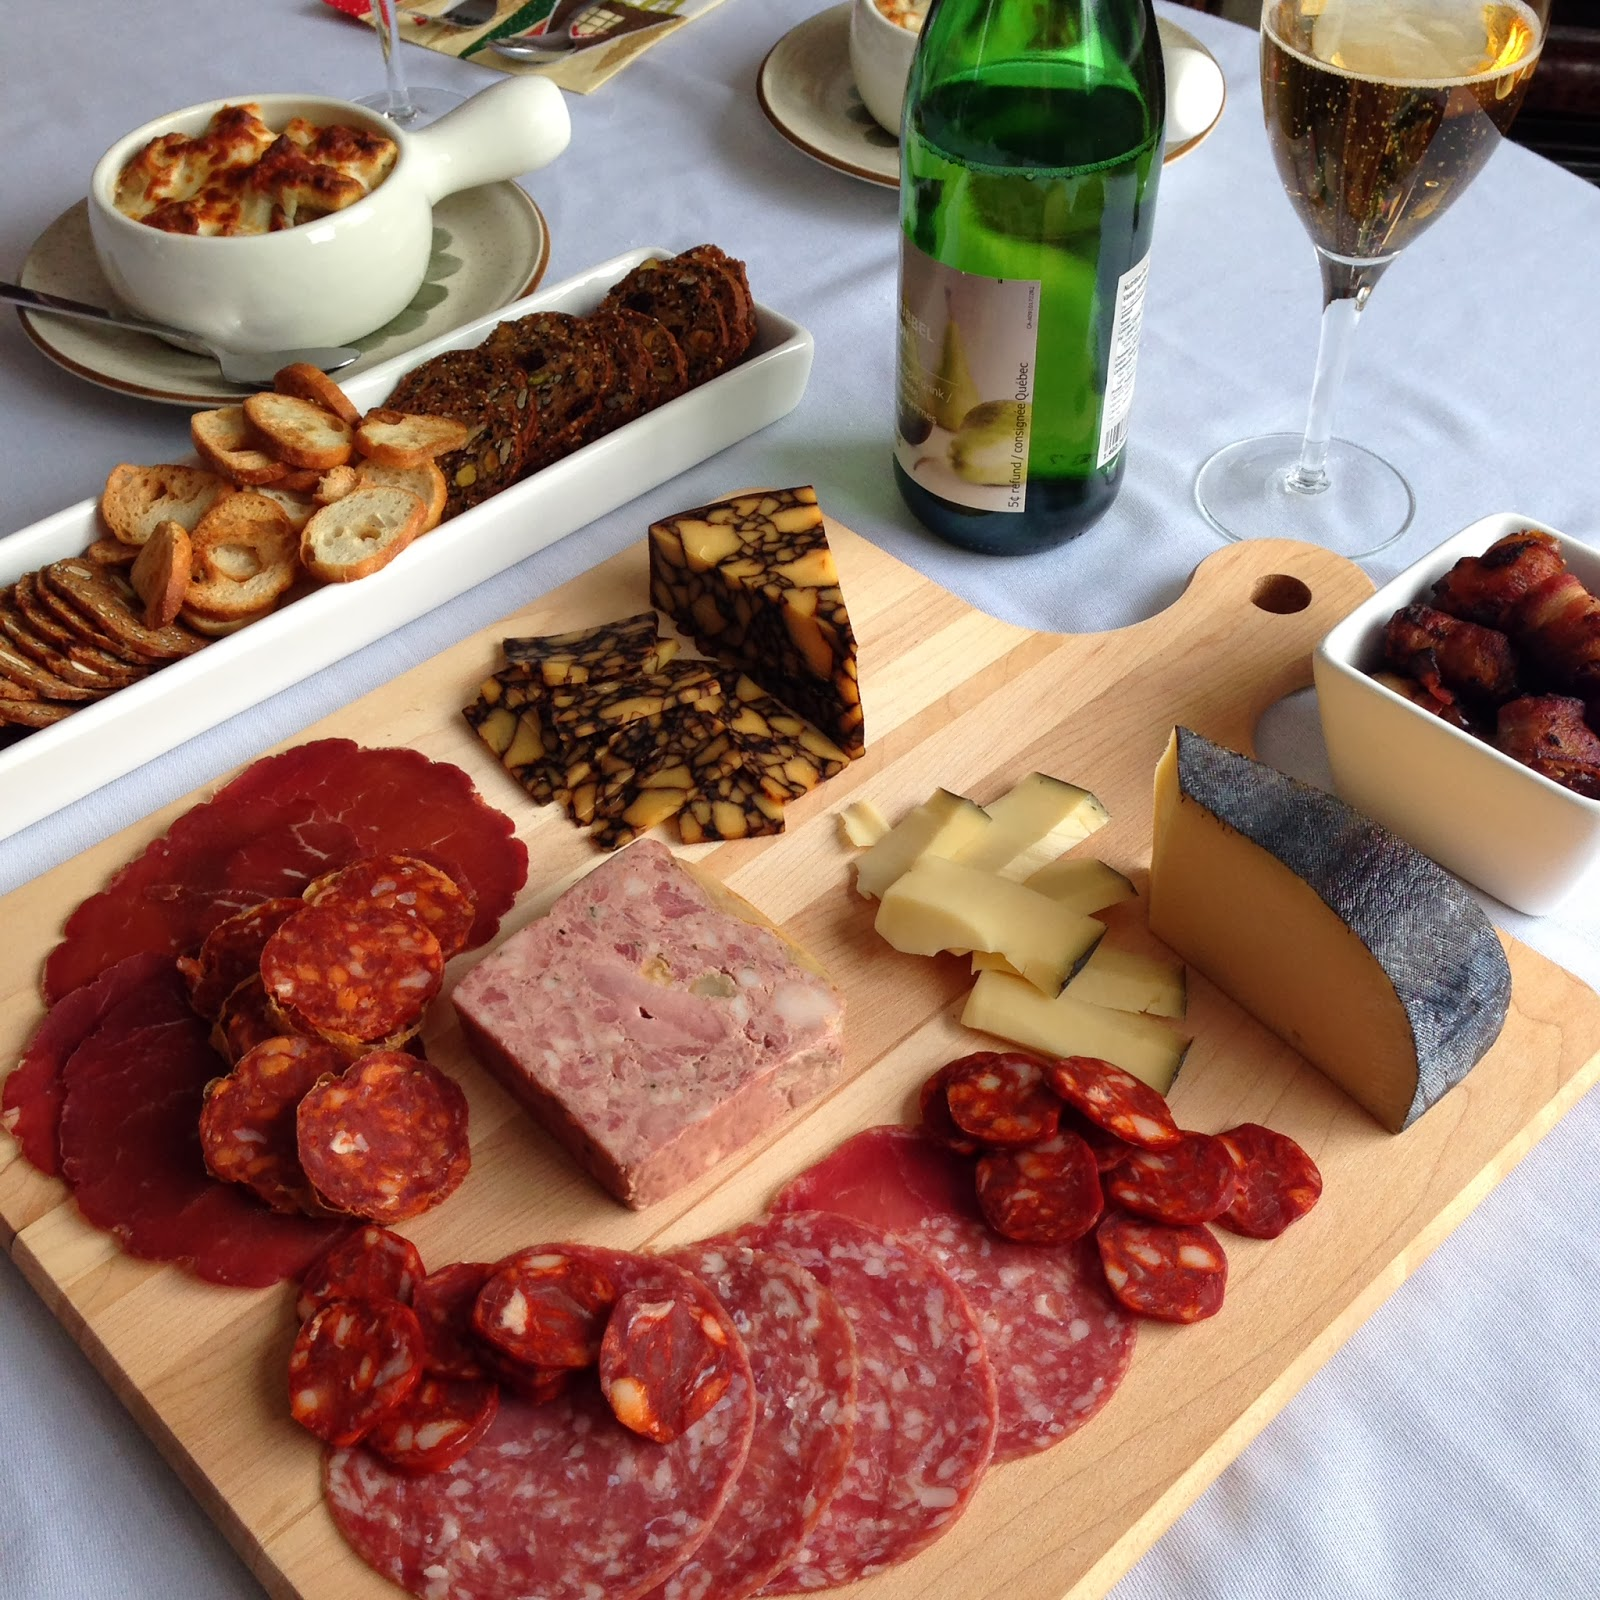 An Elegant Presentation for a Charcuterie Party